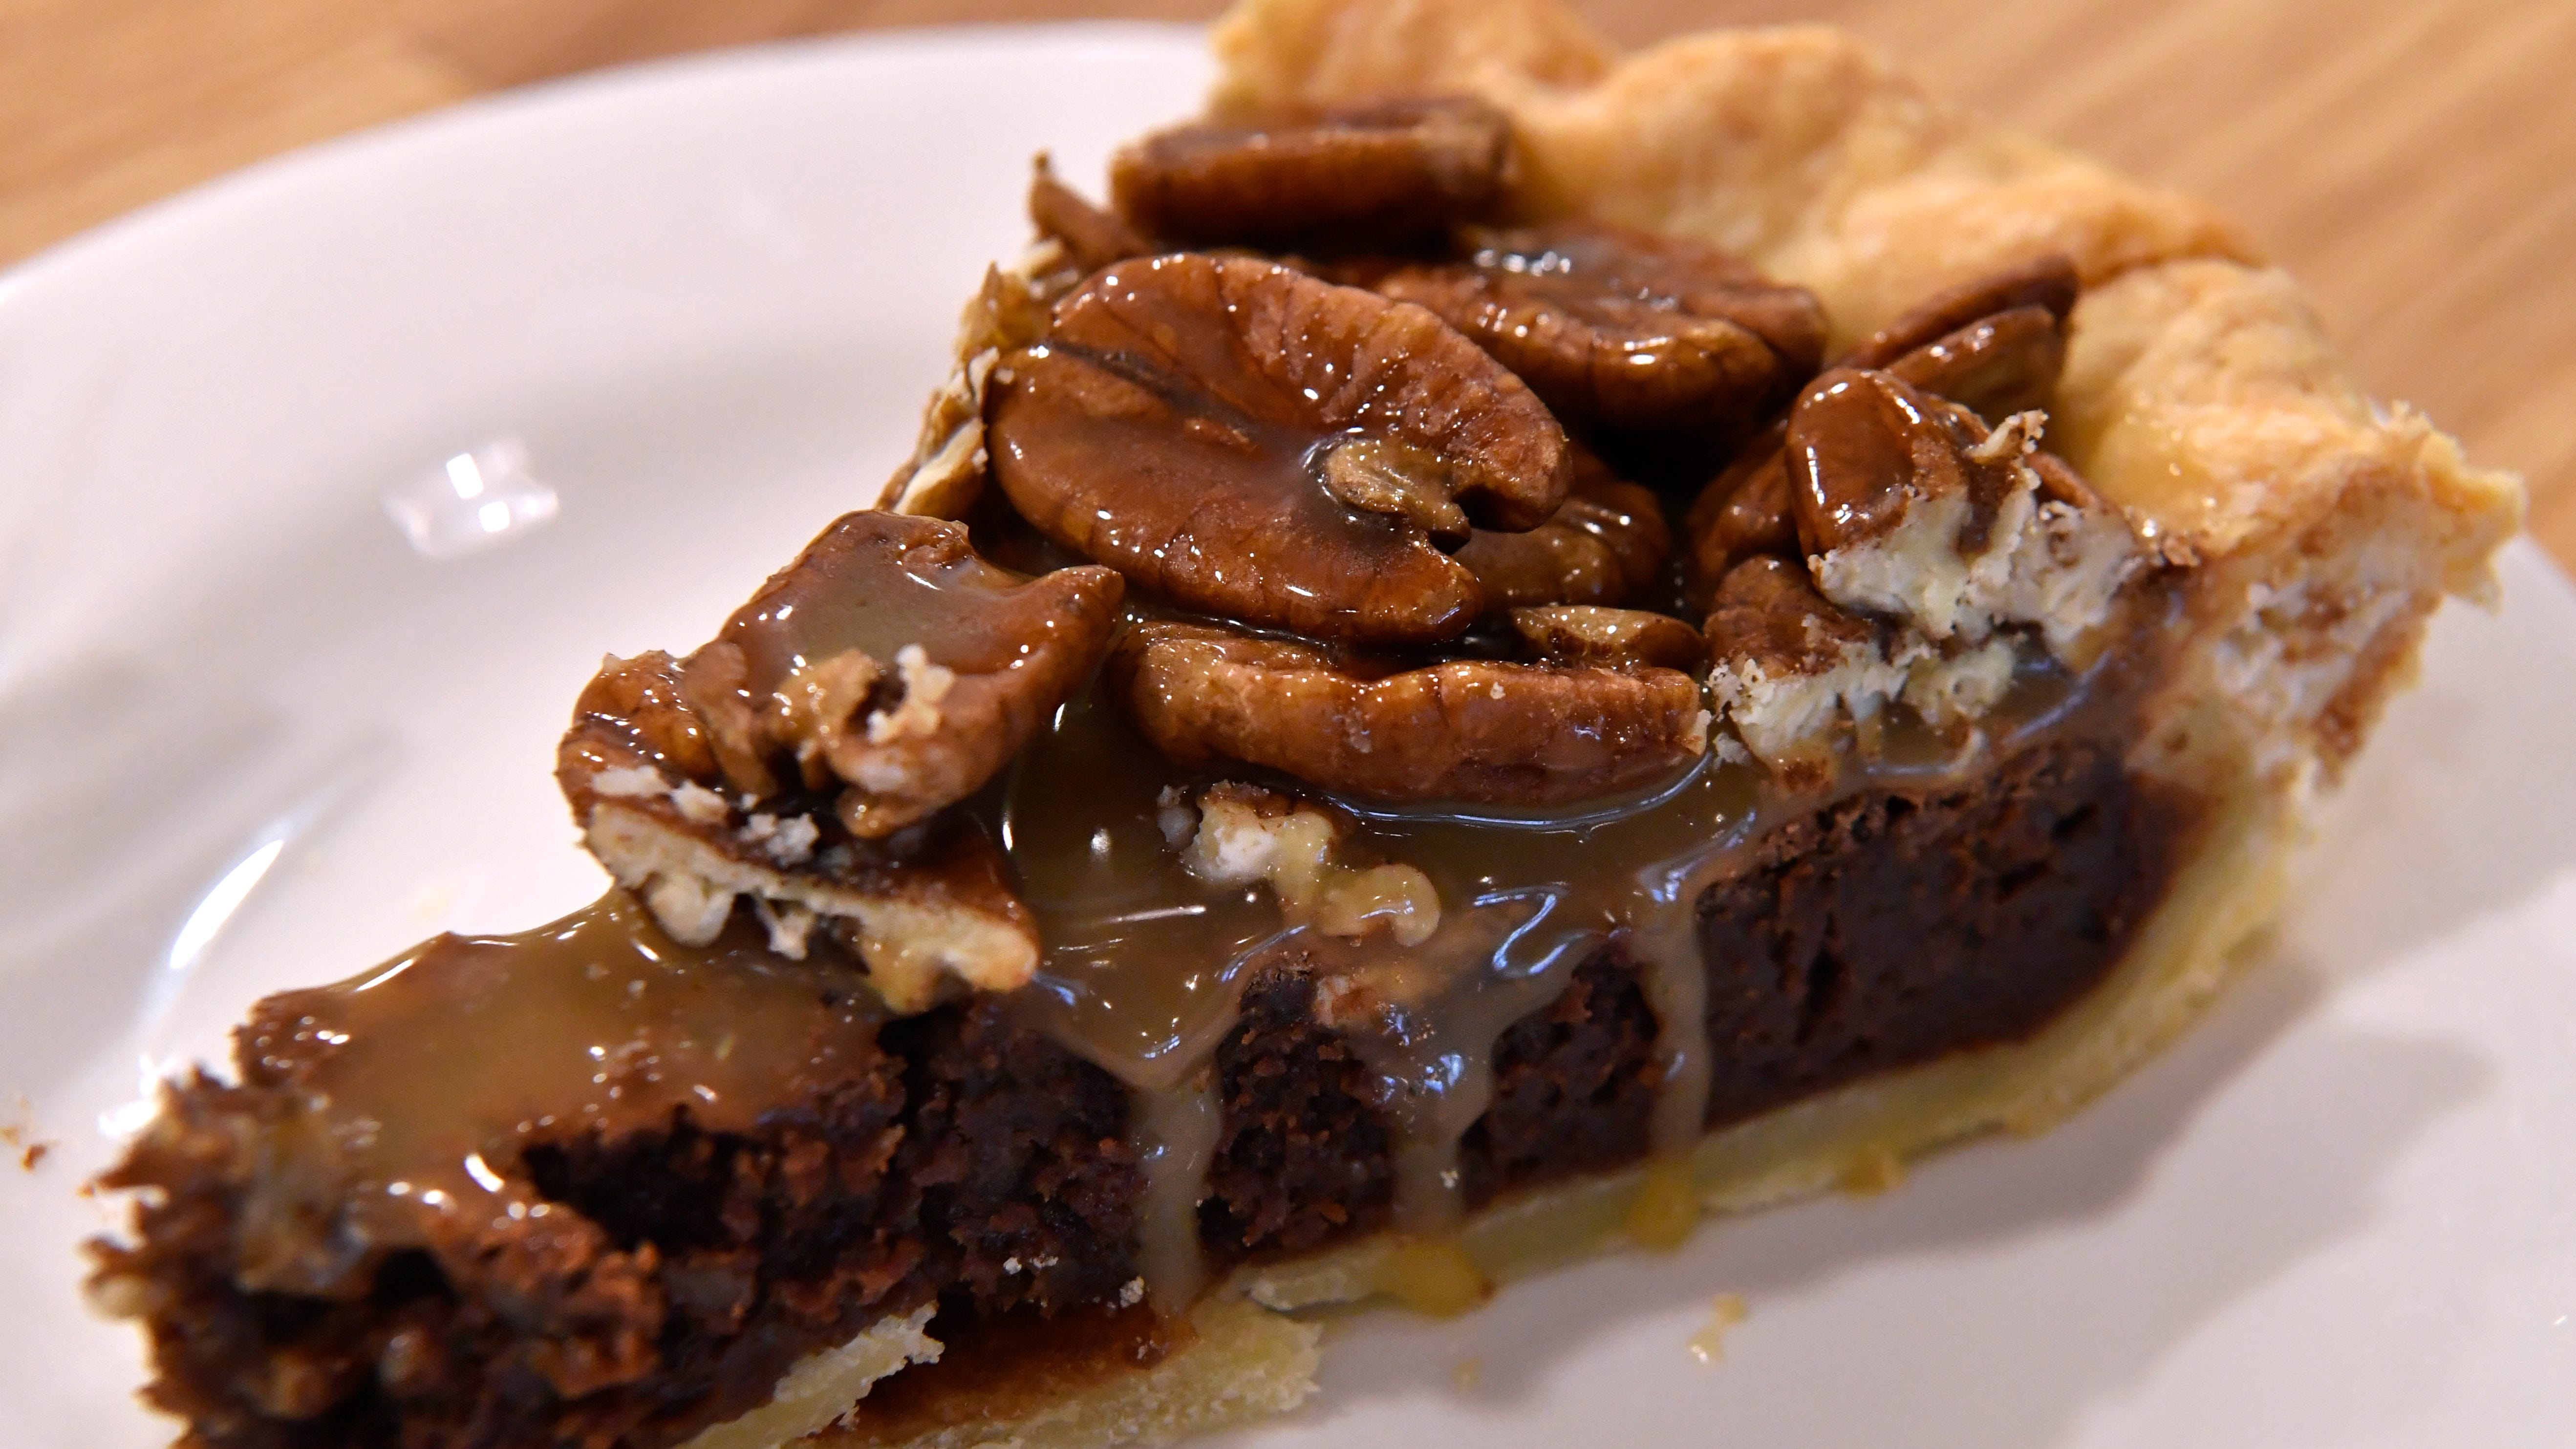 Kerry Hedges' sea salt chocolate pecan caramel pie Sept. 27, 2018. Slowpoke Farm Market features homemade pies, bread, and other foods.